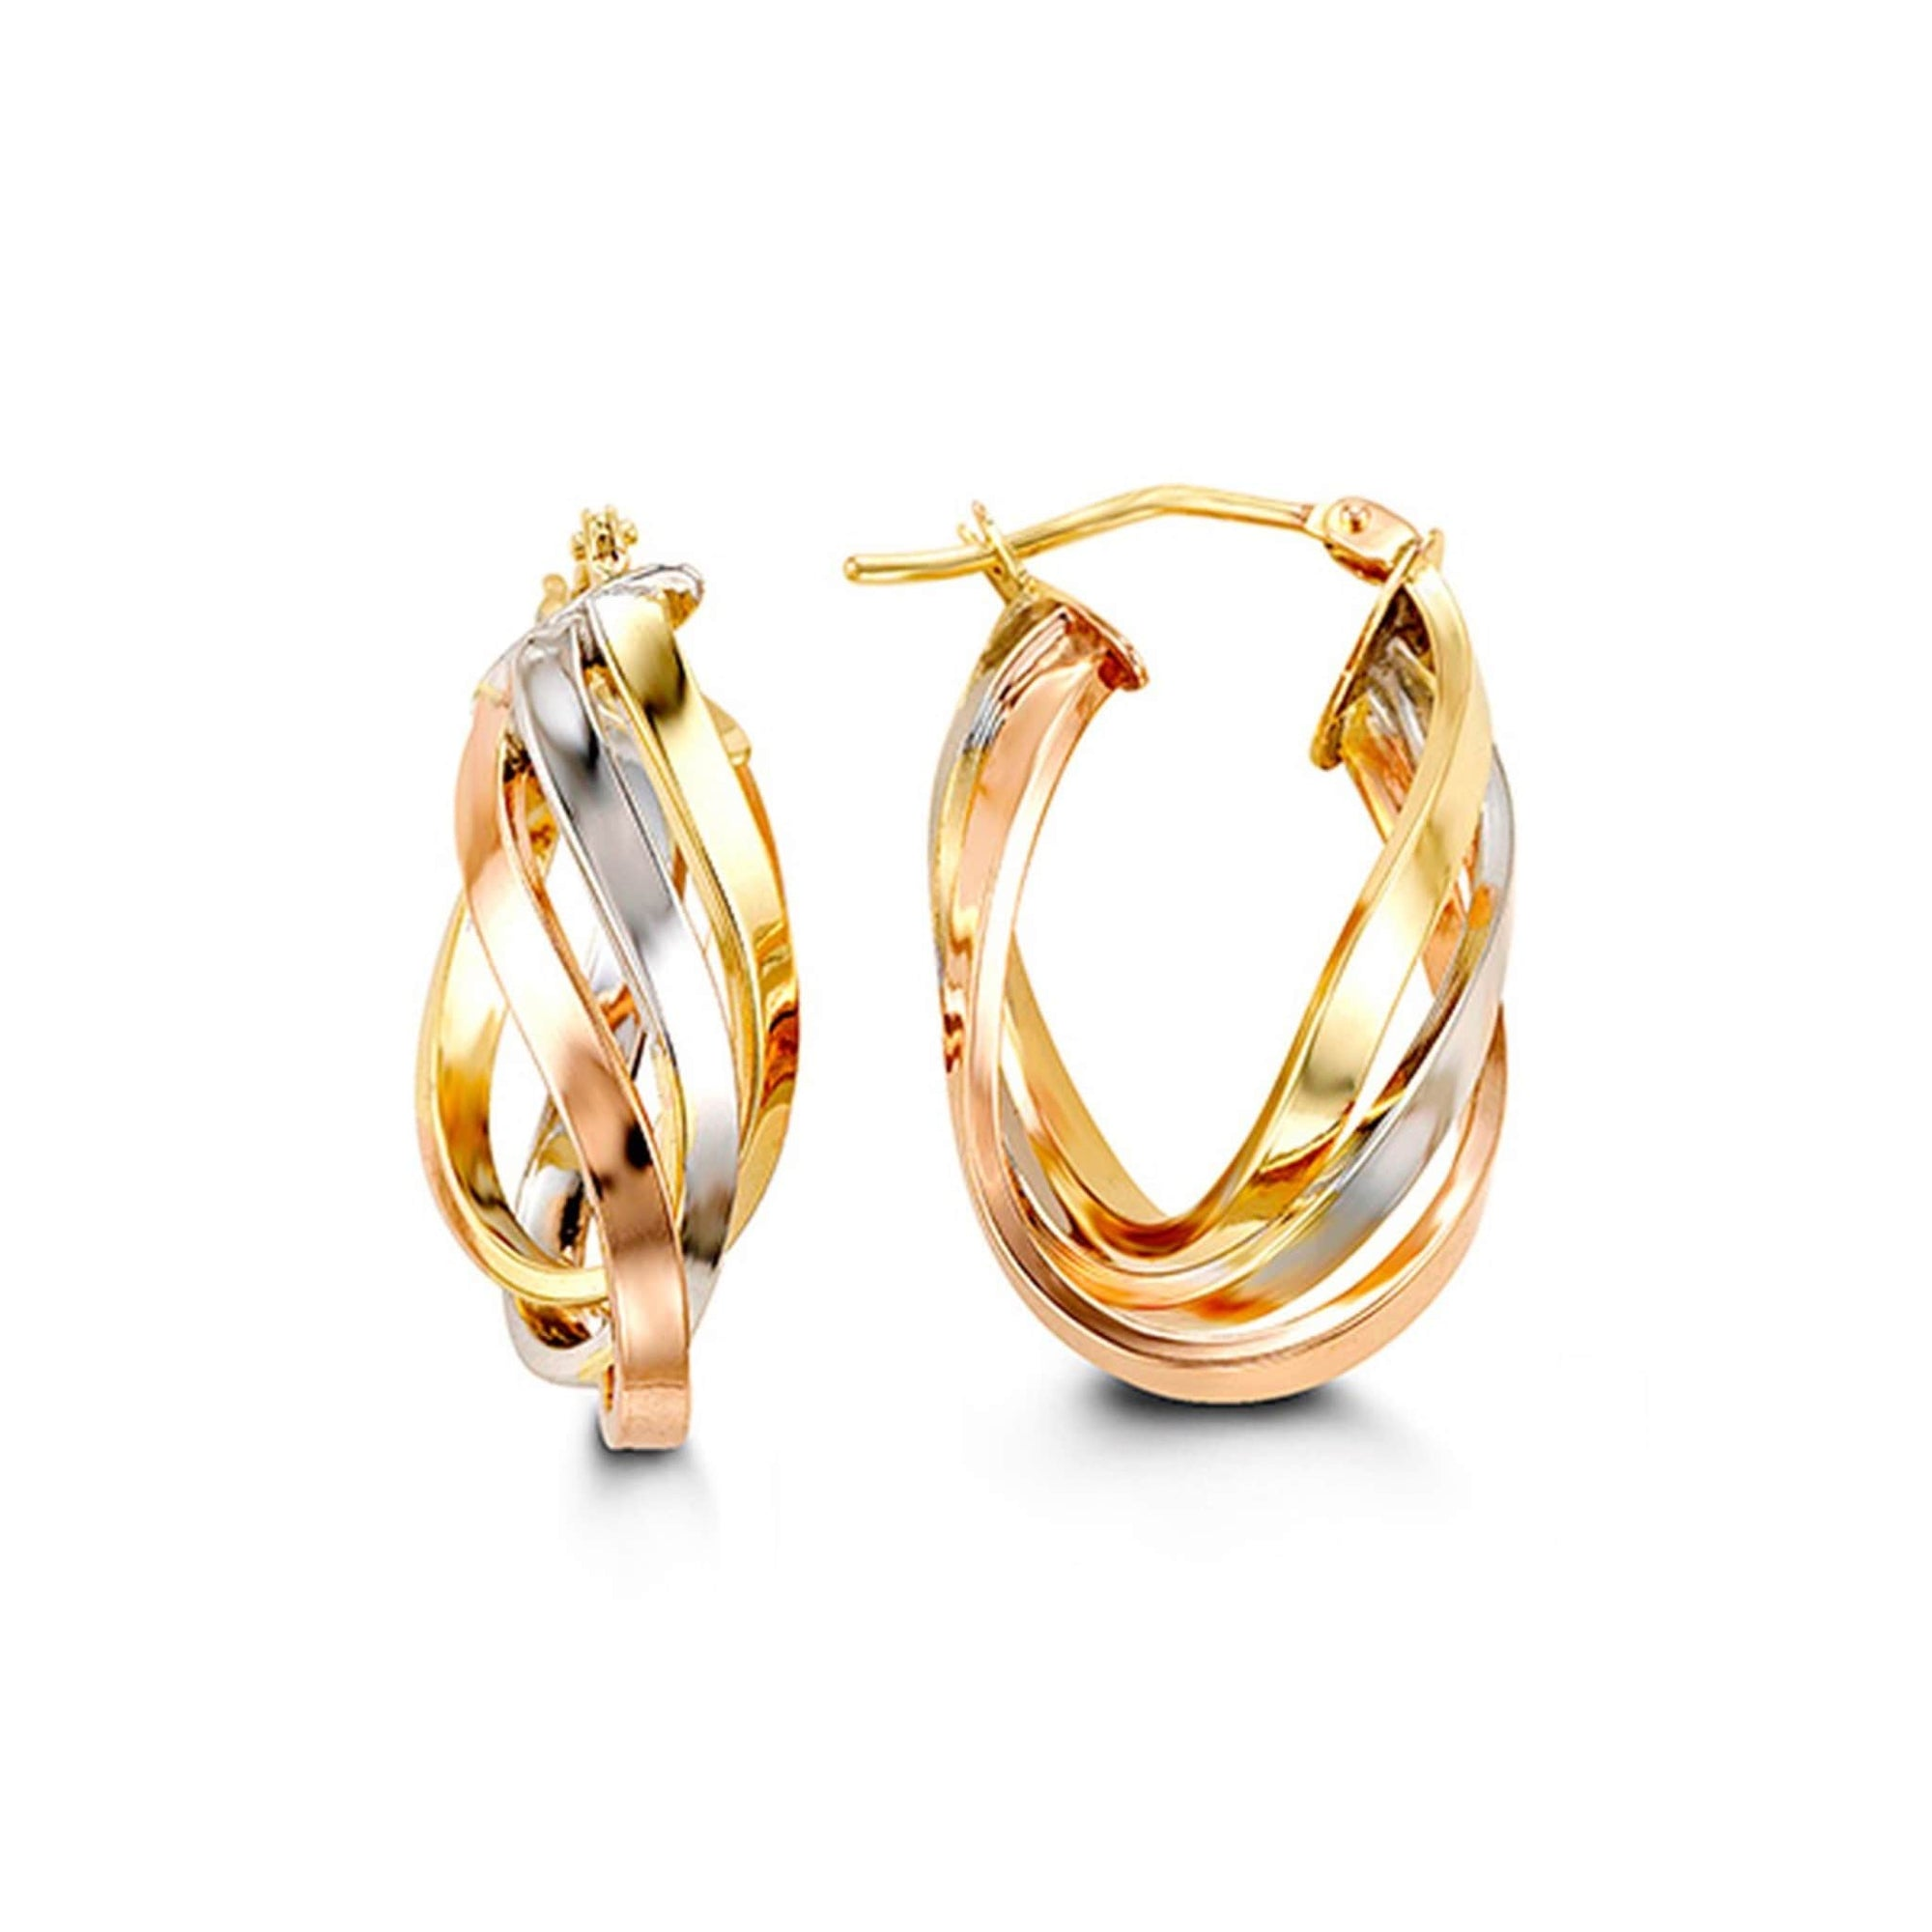 10K Tri-Colour Gold Hoop Earrings at Arman's Jewellers